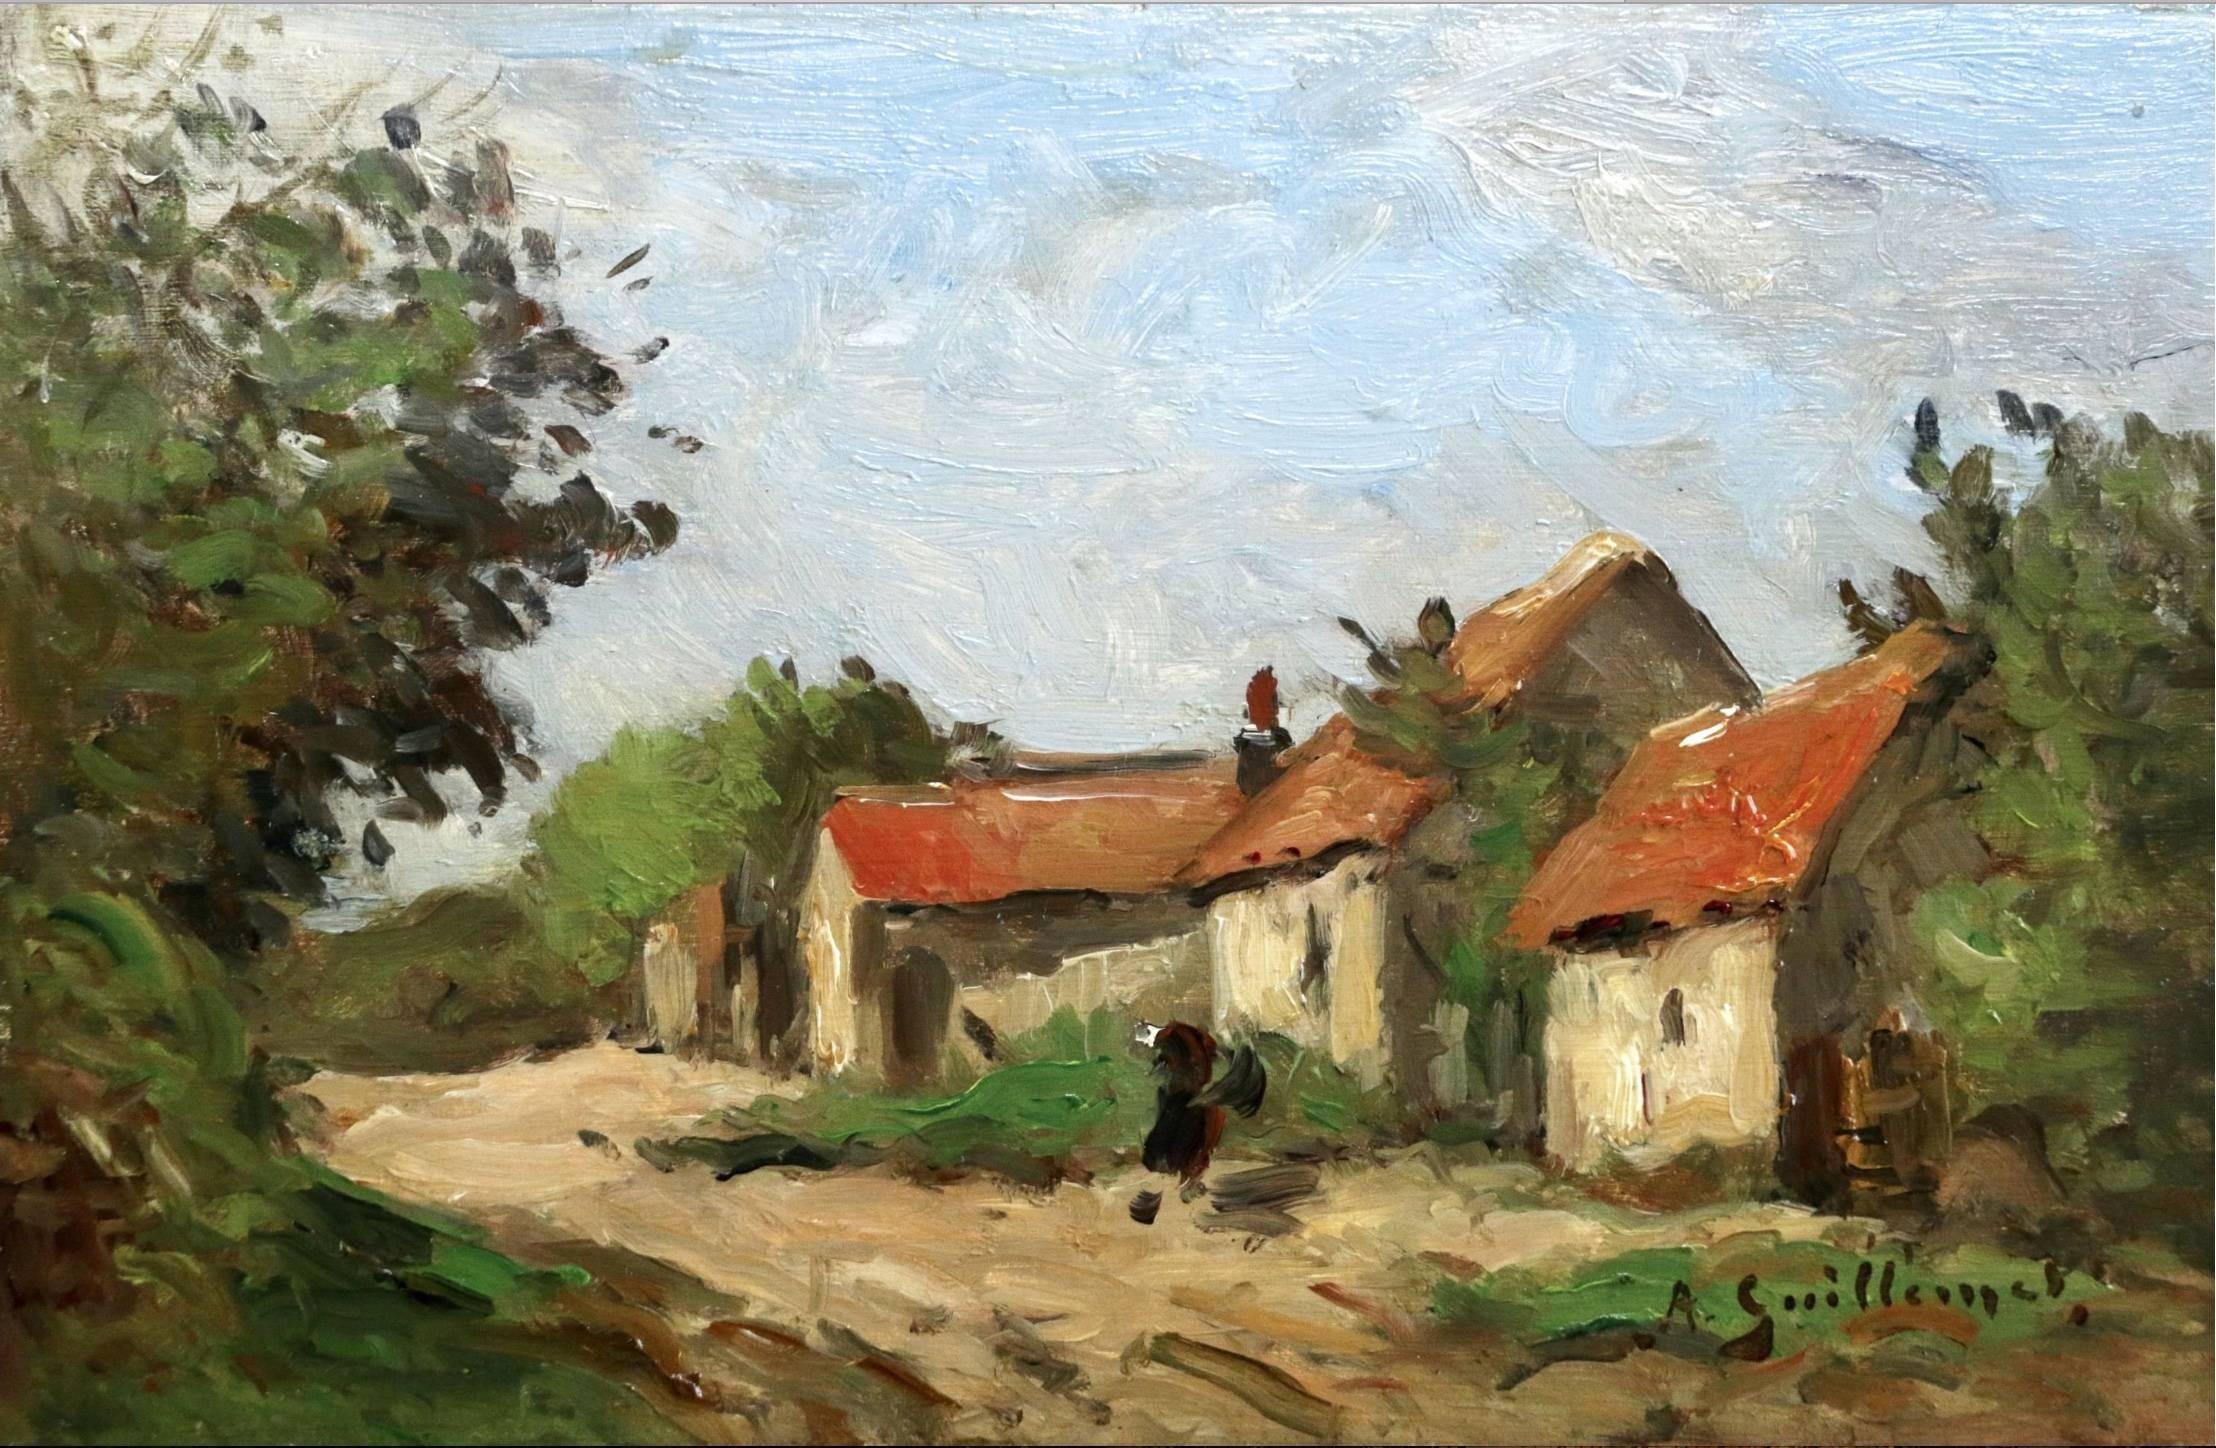 Figure by Cottages